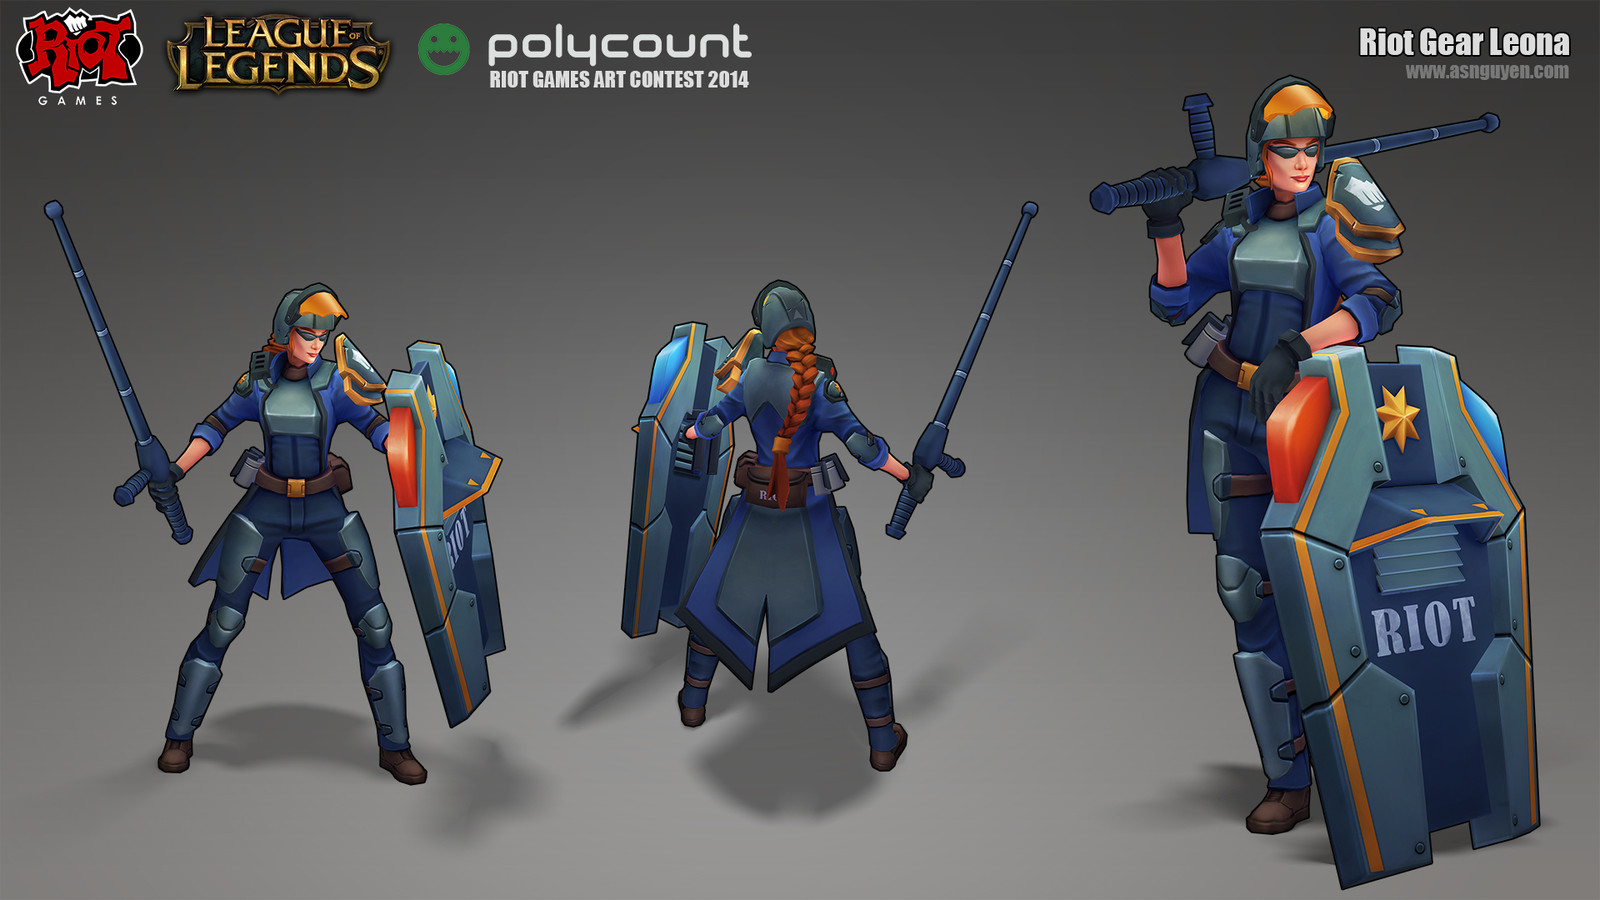 Riot Gear Leona - Polycount Contest 2014